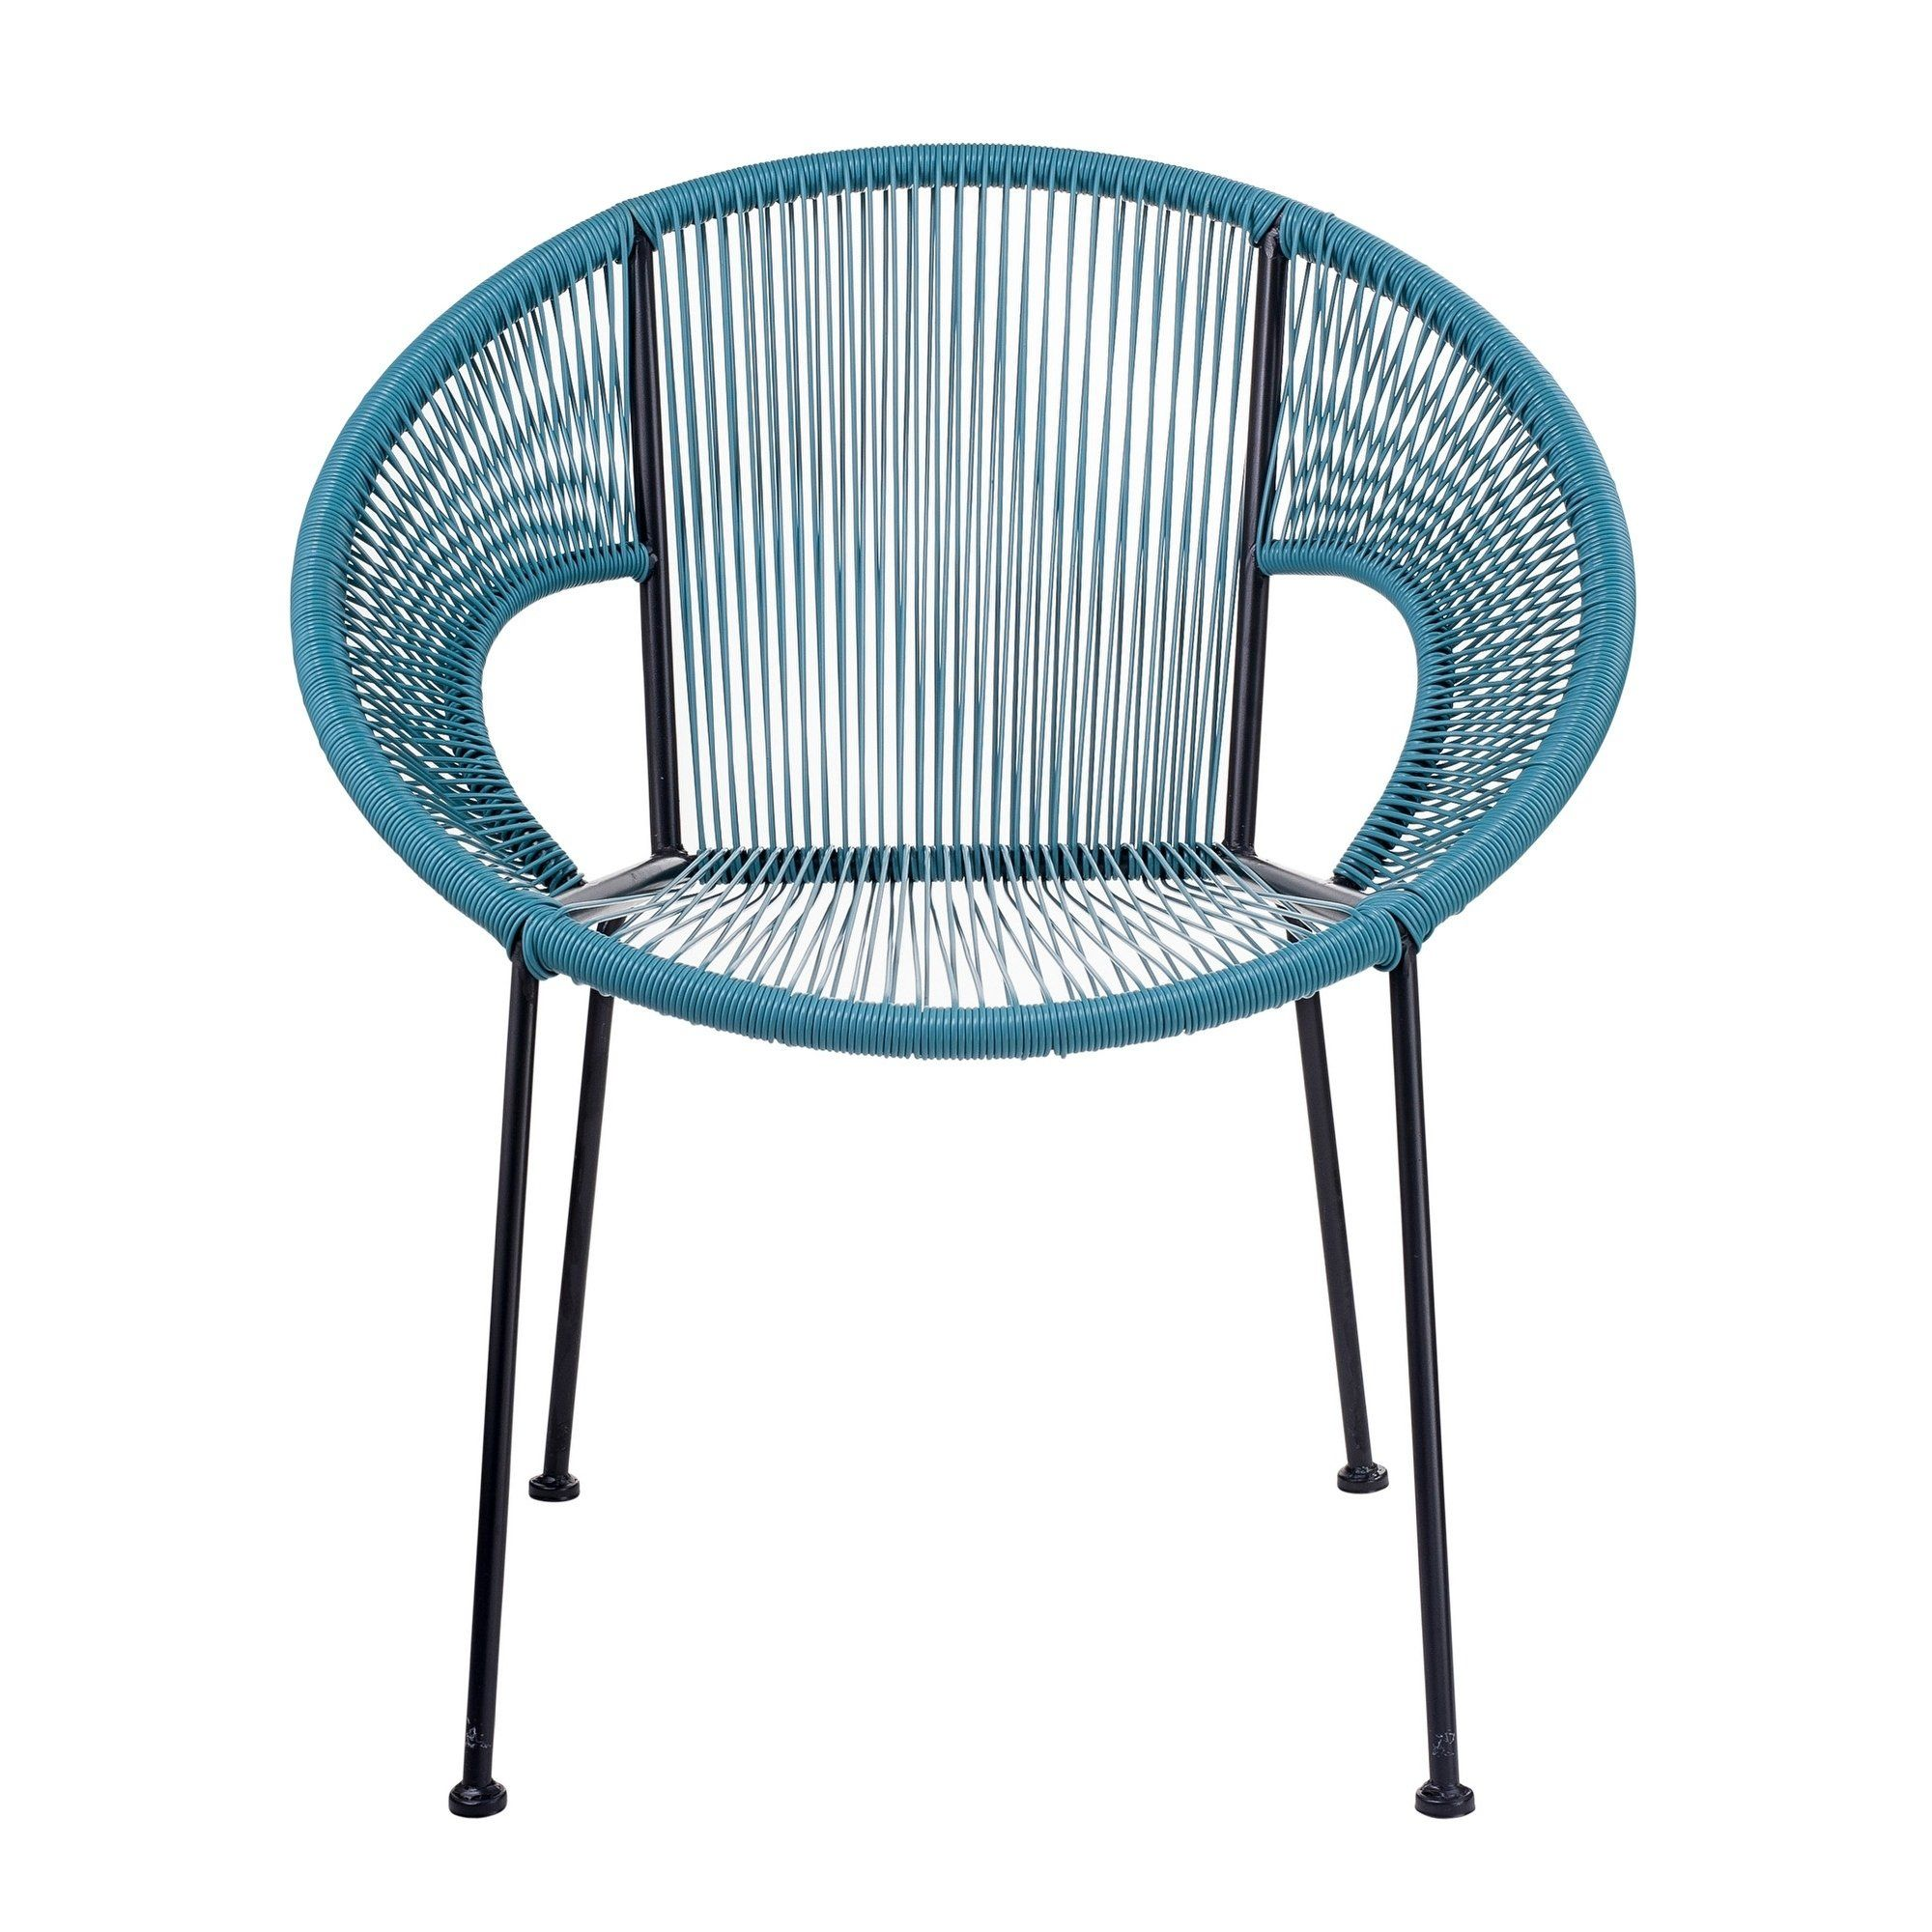 Awe Inspiring American Atelier Blue Wicker Chair Plastic Products In Caraccident5 Cool Chair Designs And Ideas Caraccident5Info